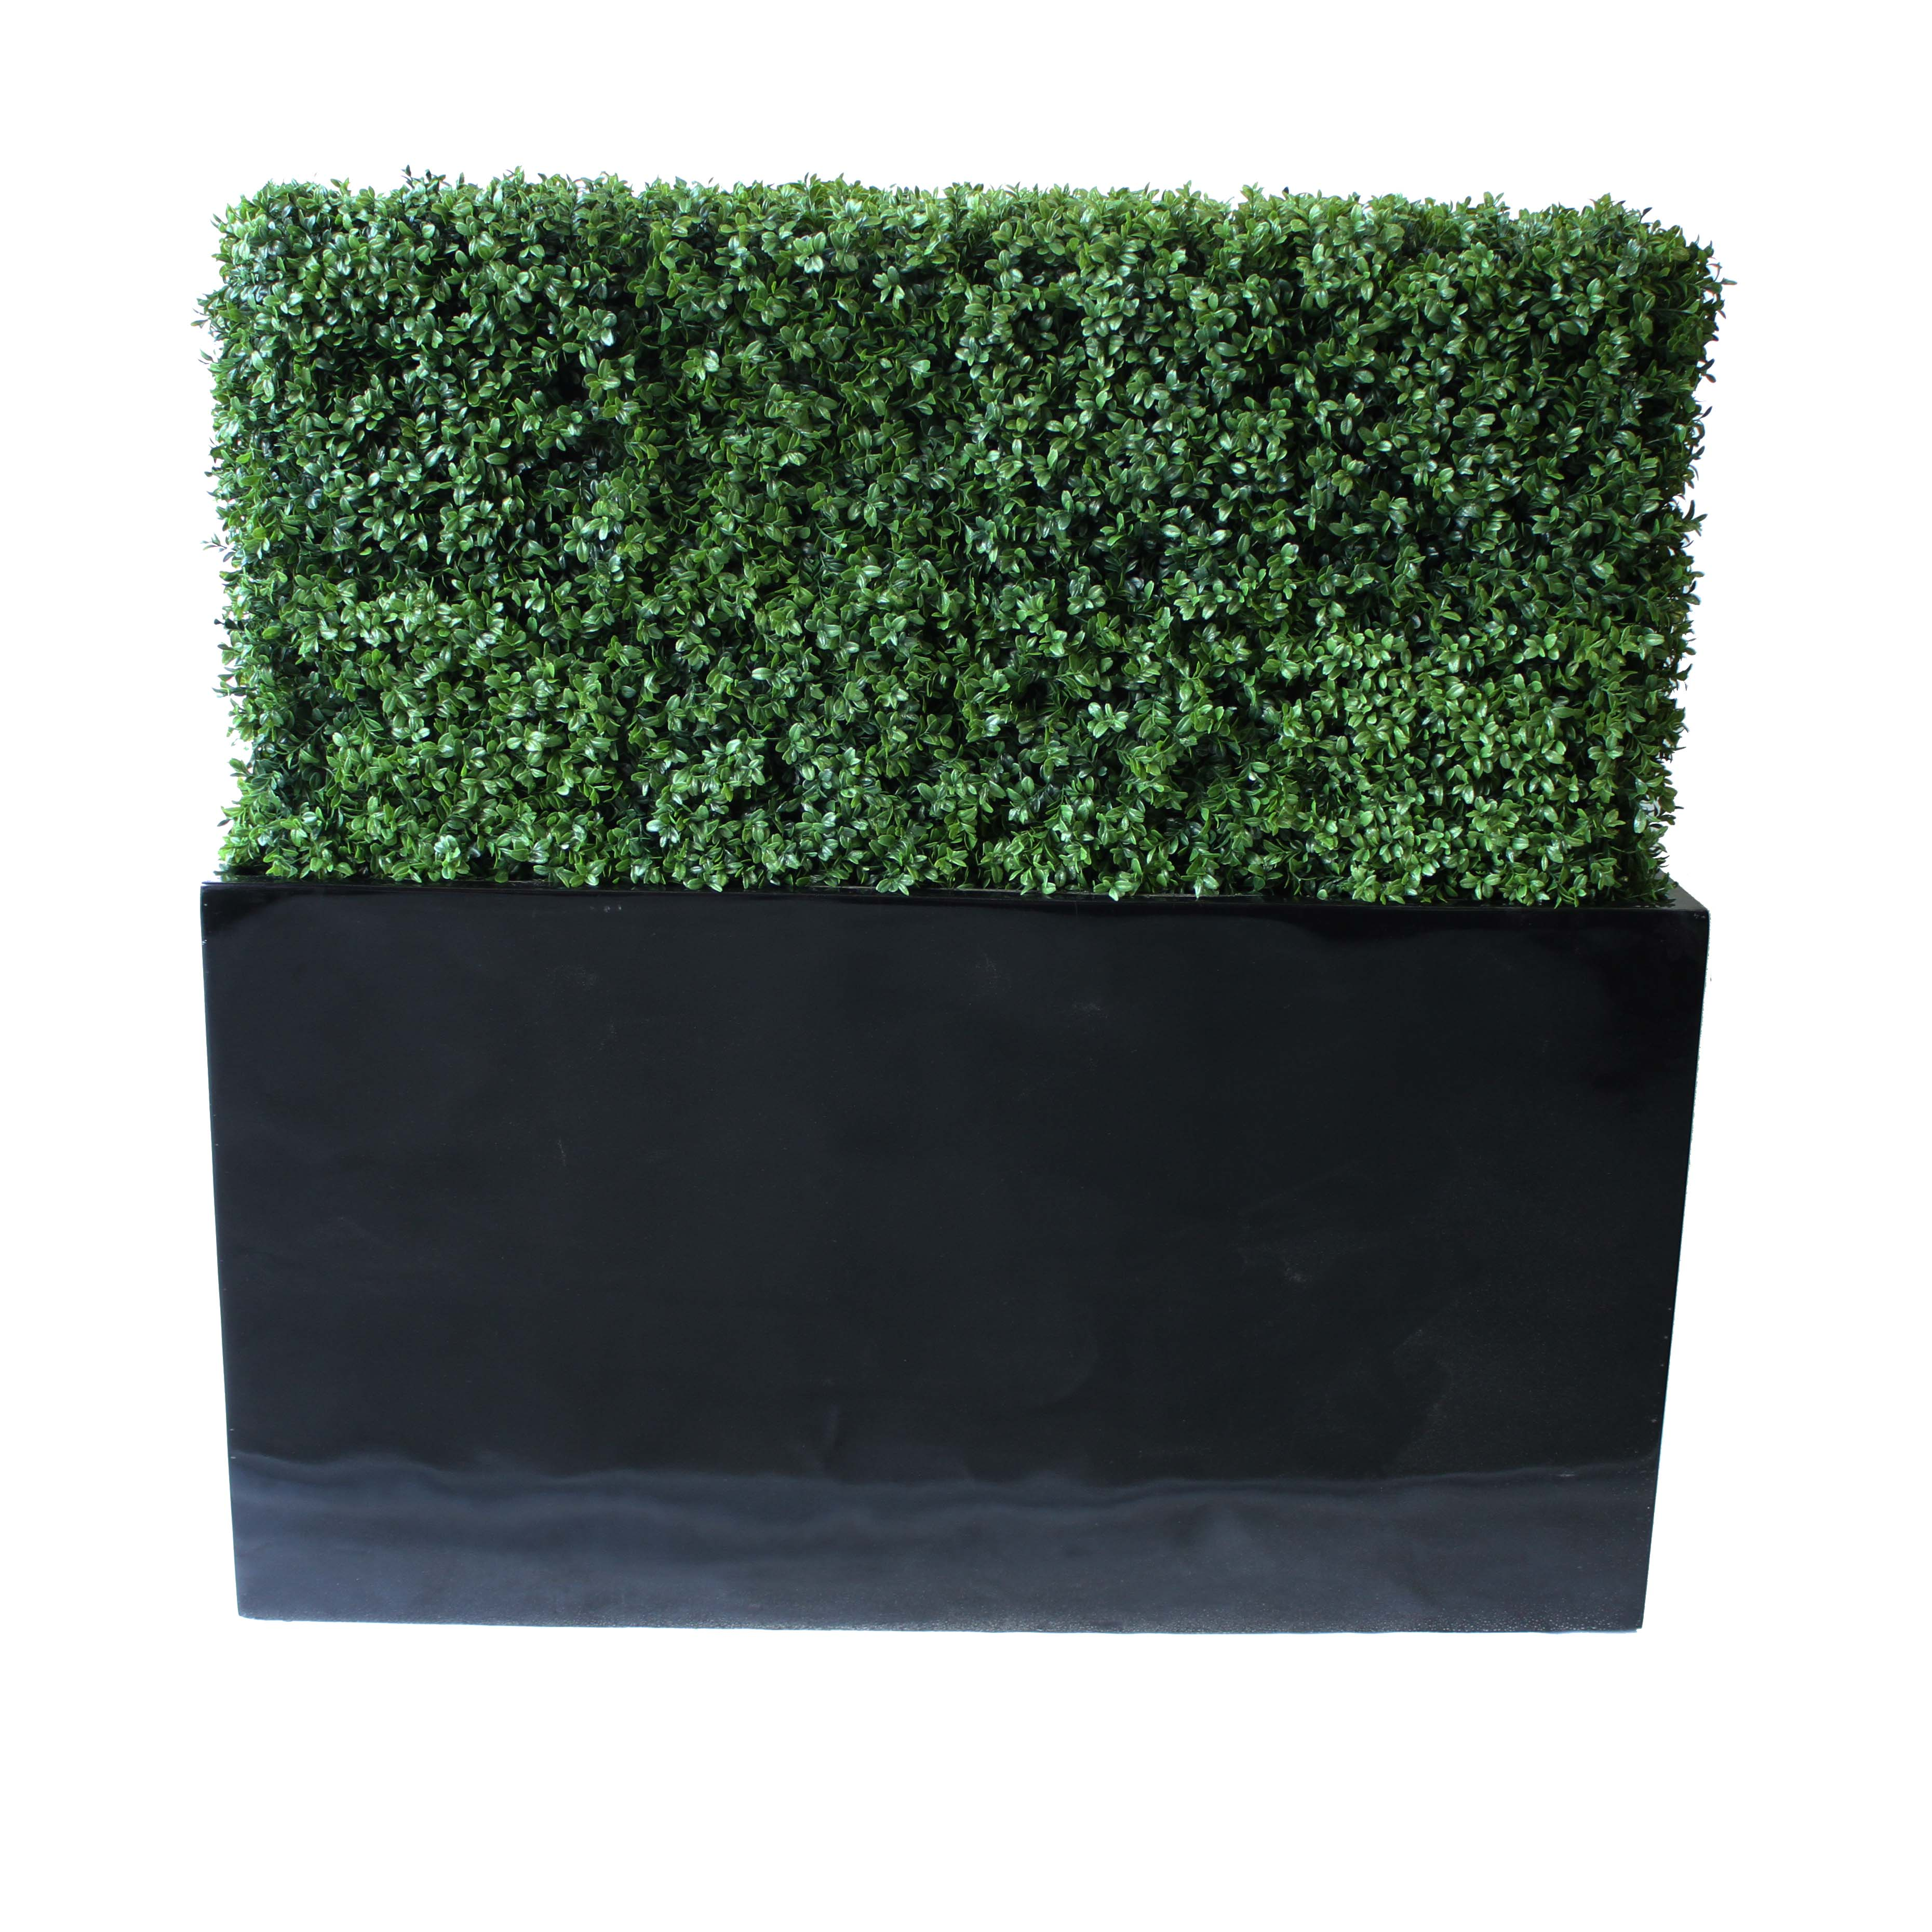 PREMIUM DELUXE BOXWOOD HEDGE 120 WIDE X 115CM TALL WITH FIBREGLASS TROUGH